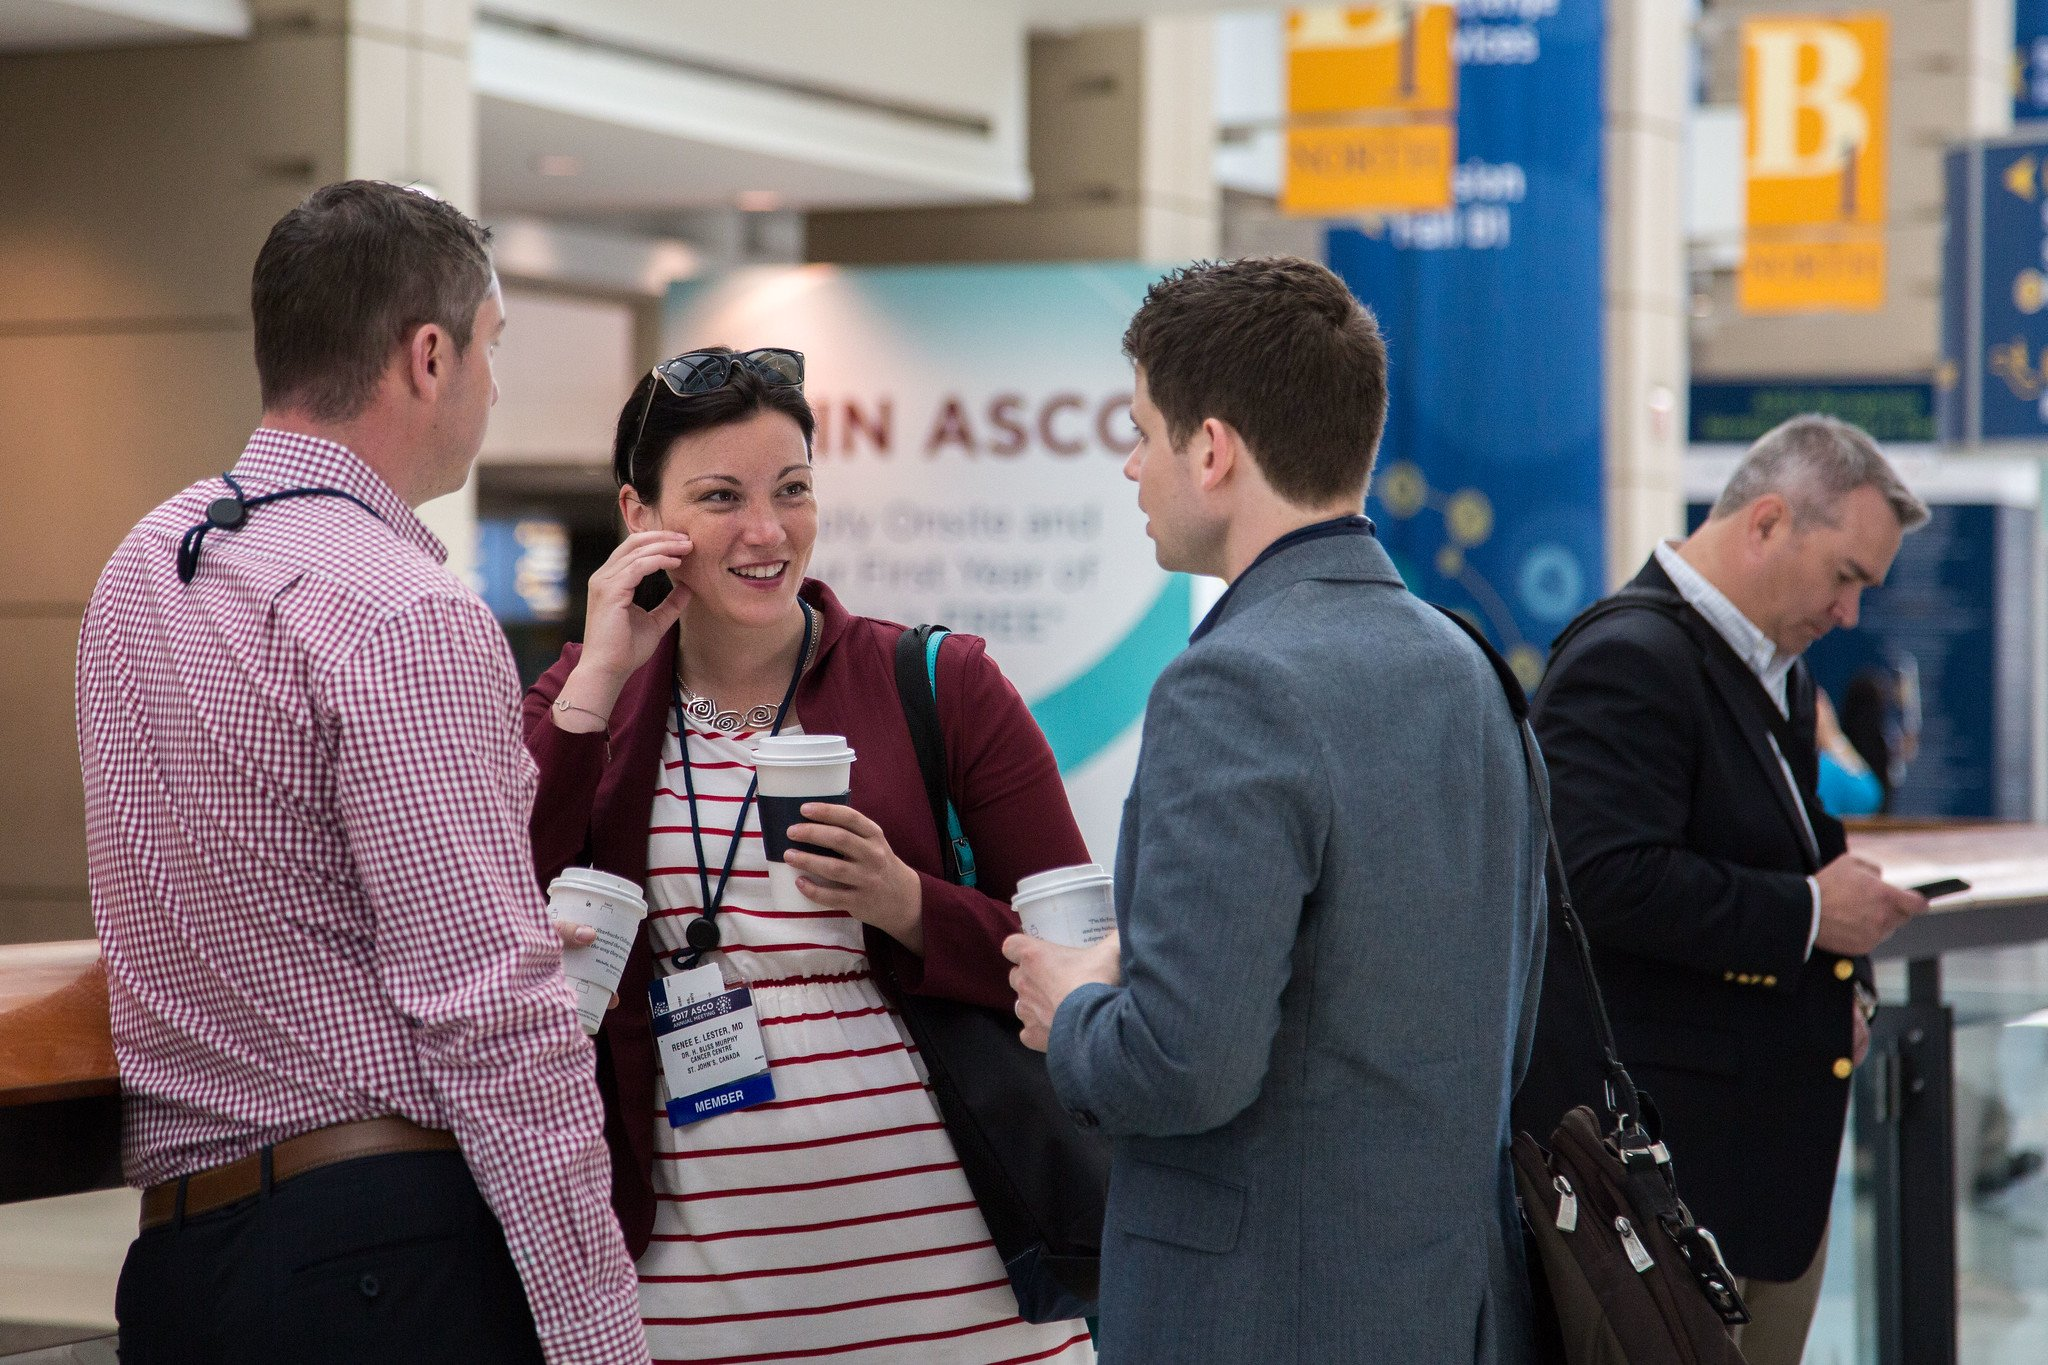 Attendees networking during during the American Society of Clinical Oncology (ASCO) Annual Meeting. Courtesy: © ASCO/Danny Morton